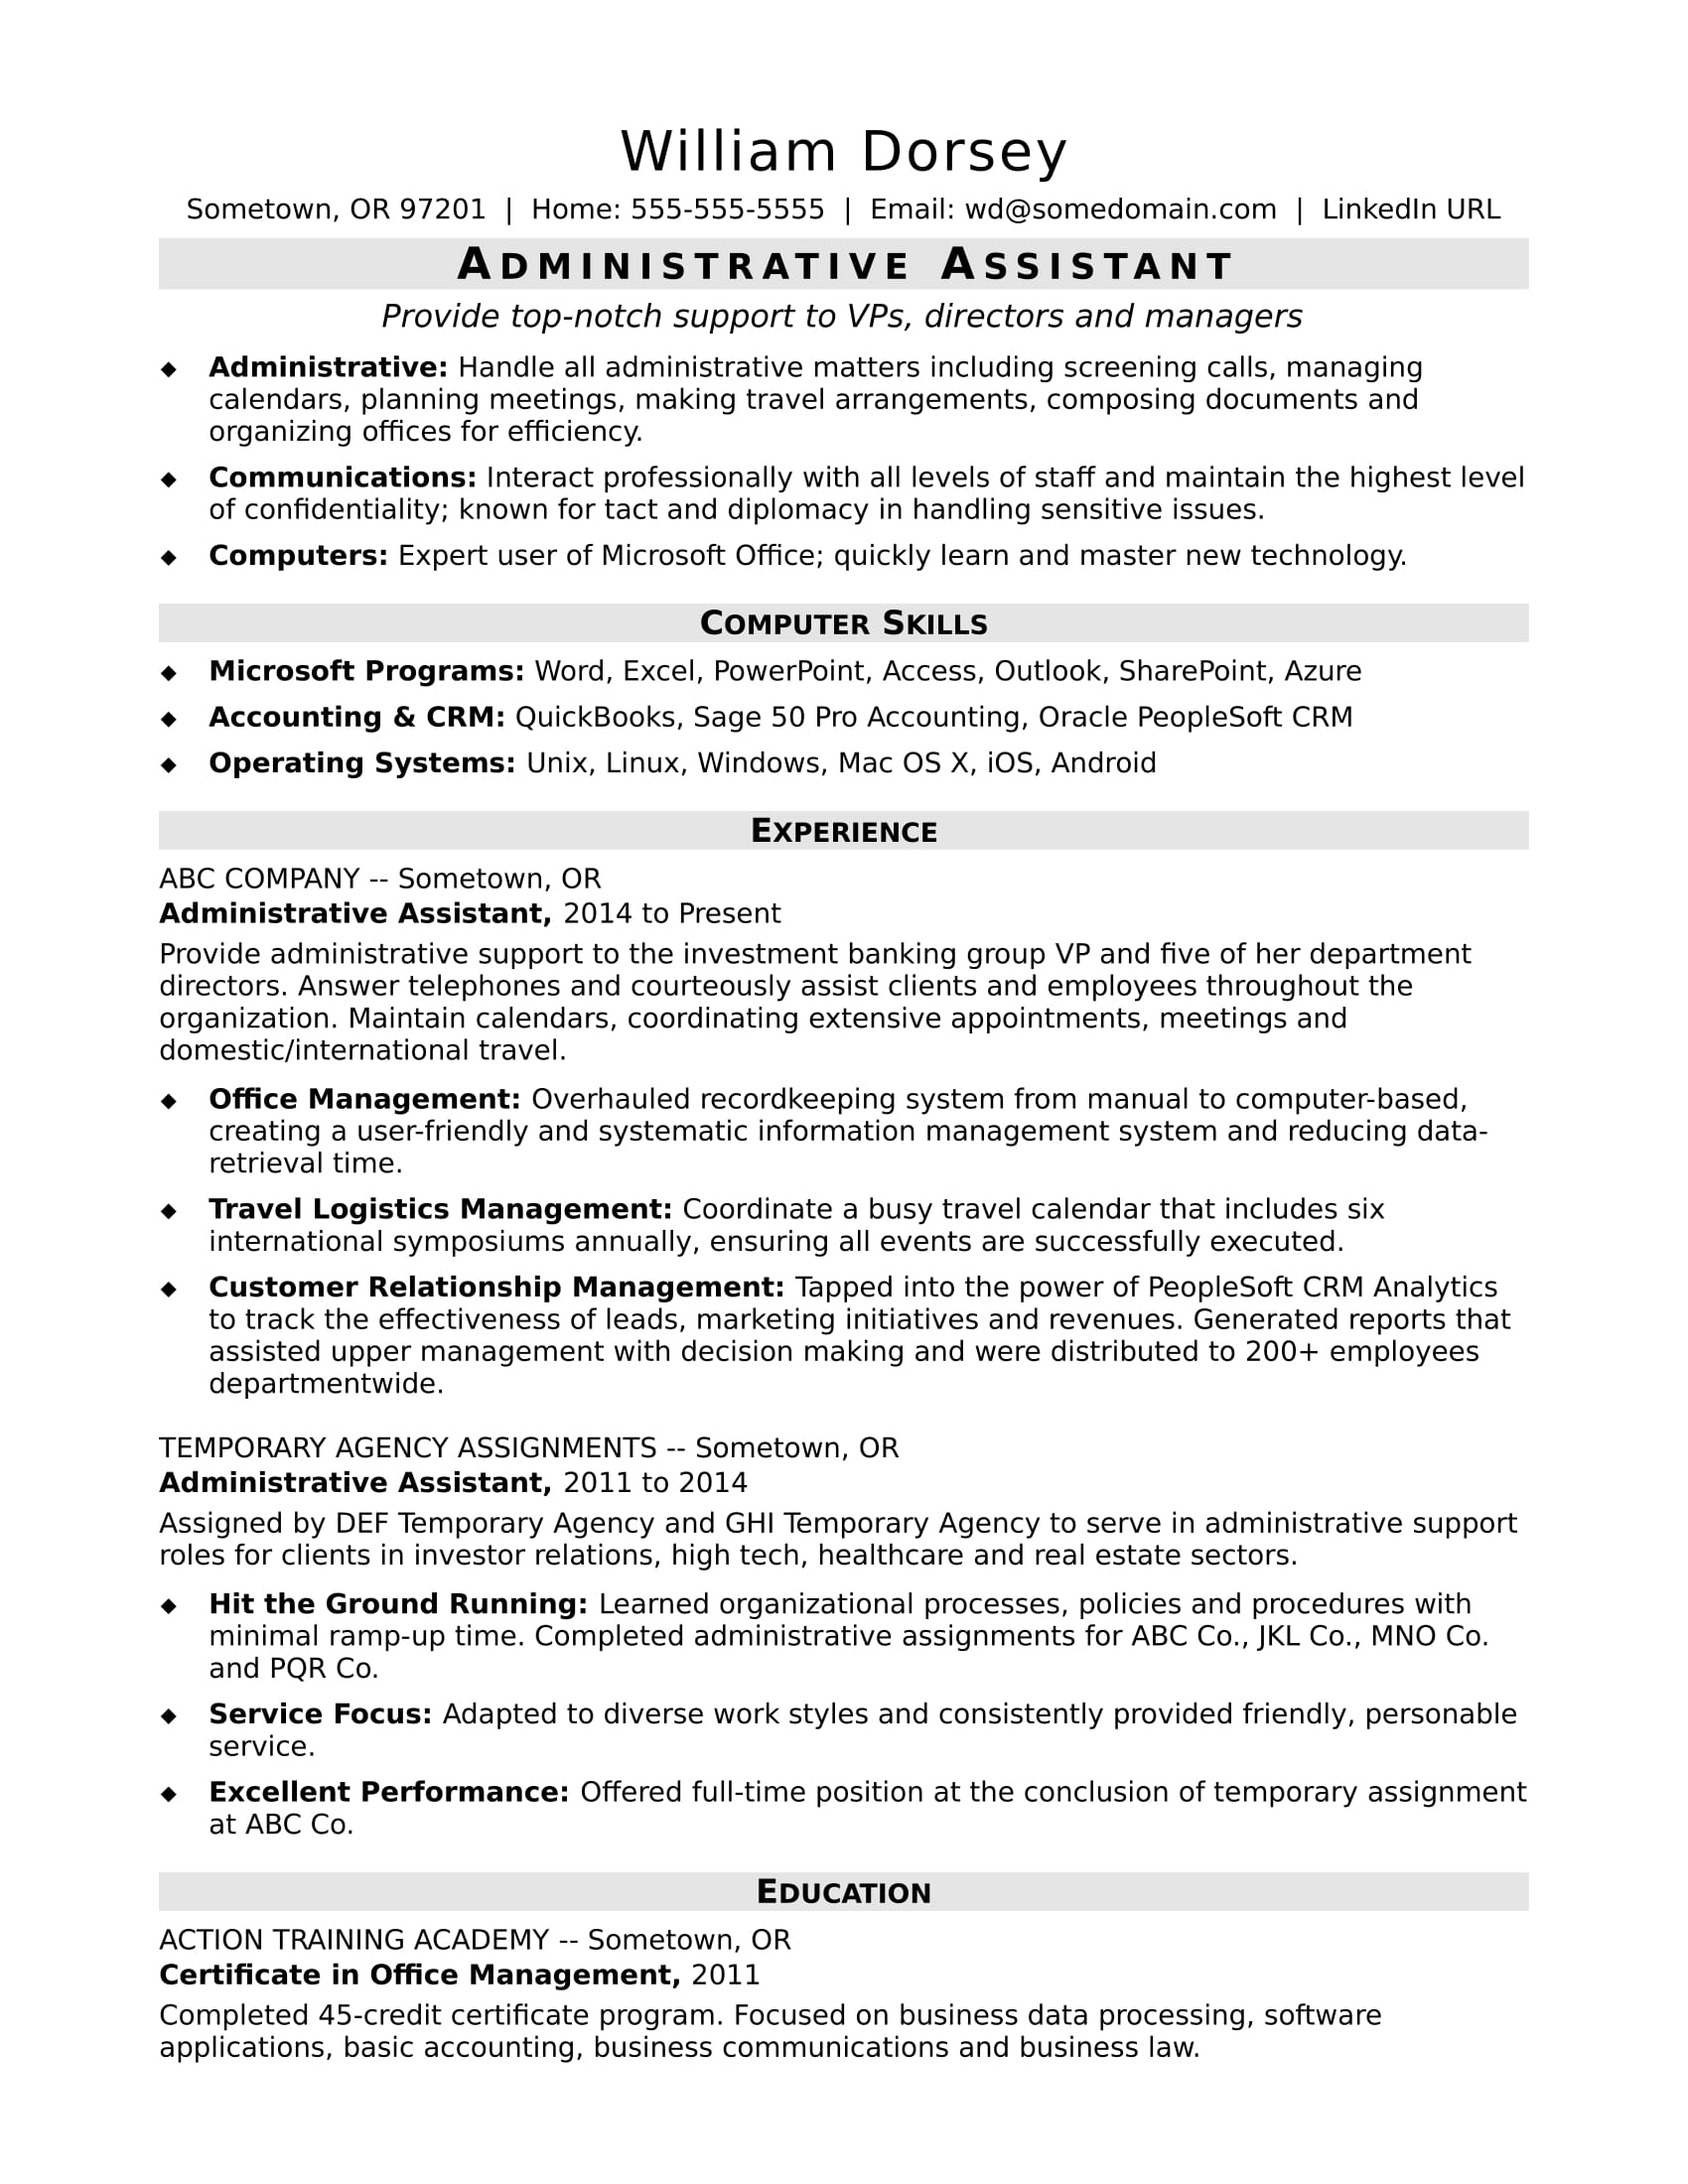 midlevel administrative assistant resume sample monster summary examples for clinical Resume Admin Assistant Resume Summary Examples